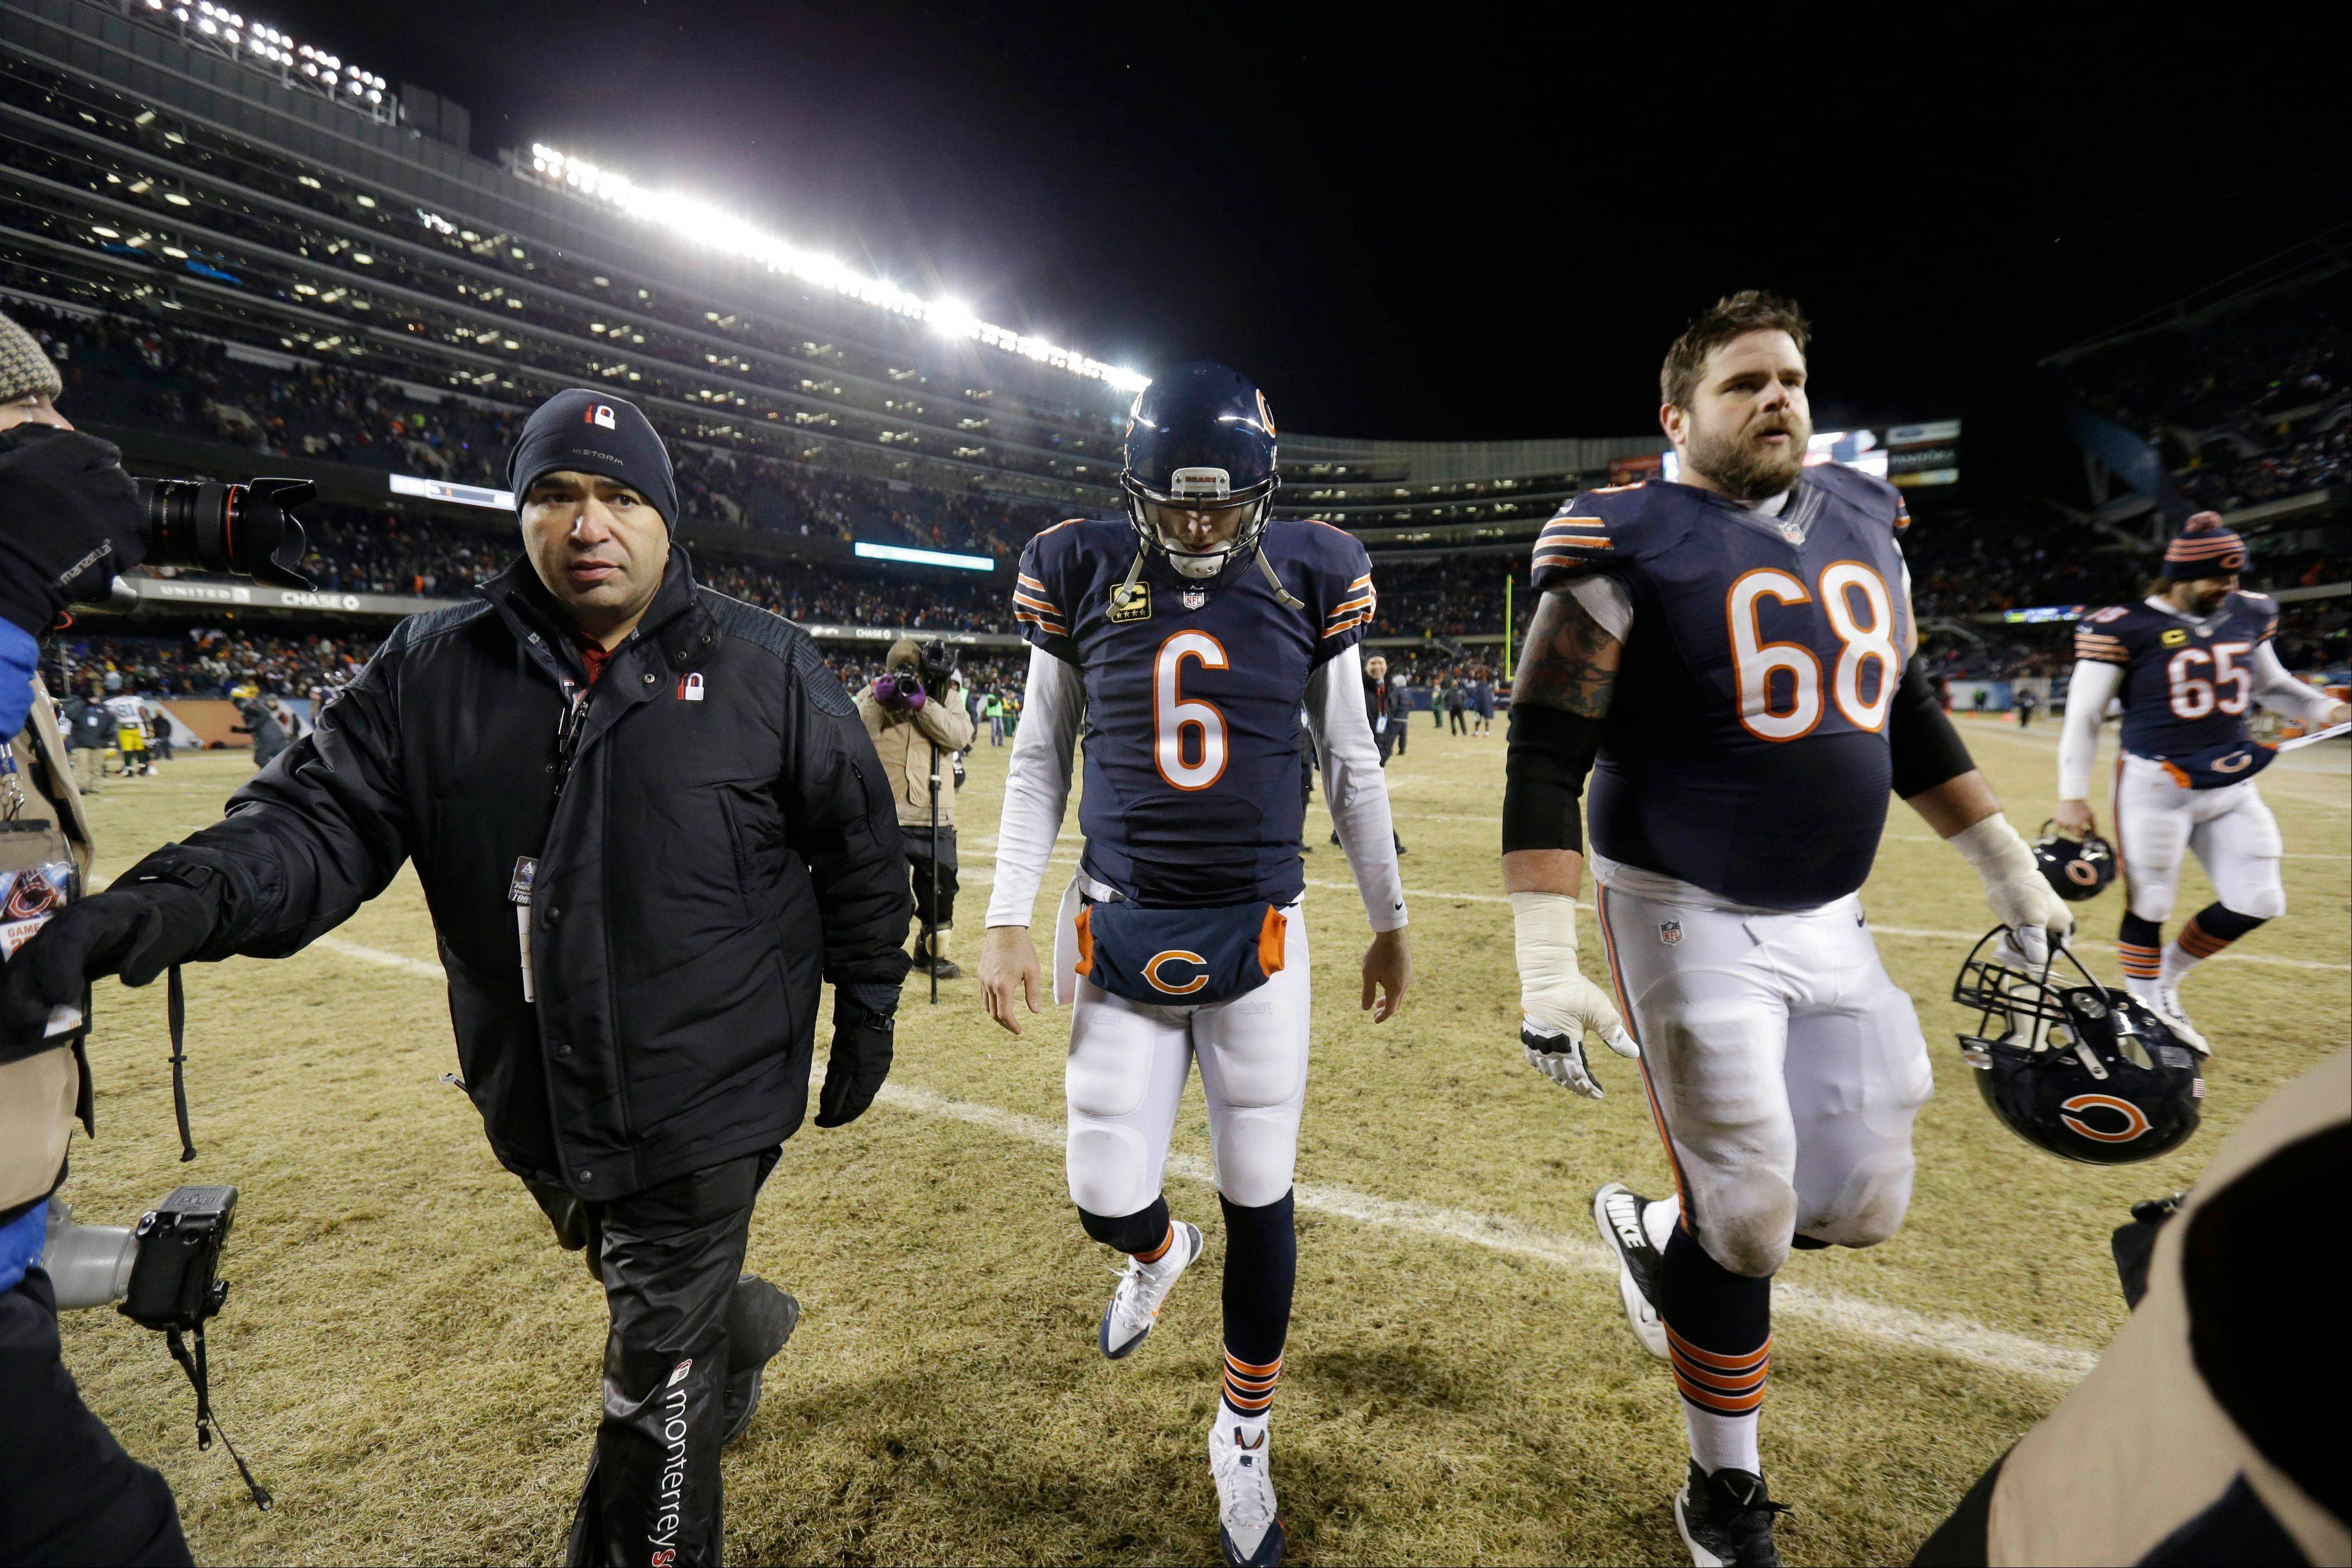 Jay Cutler walks off the field after the Bears� 33-28 loss to the Green Bay Packers in an NFL football game Sunday in Chicago.